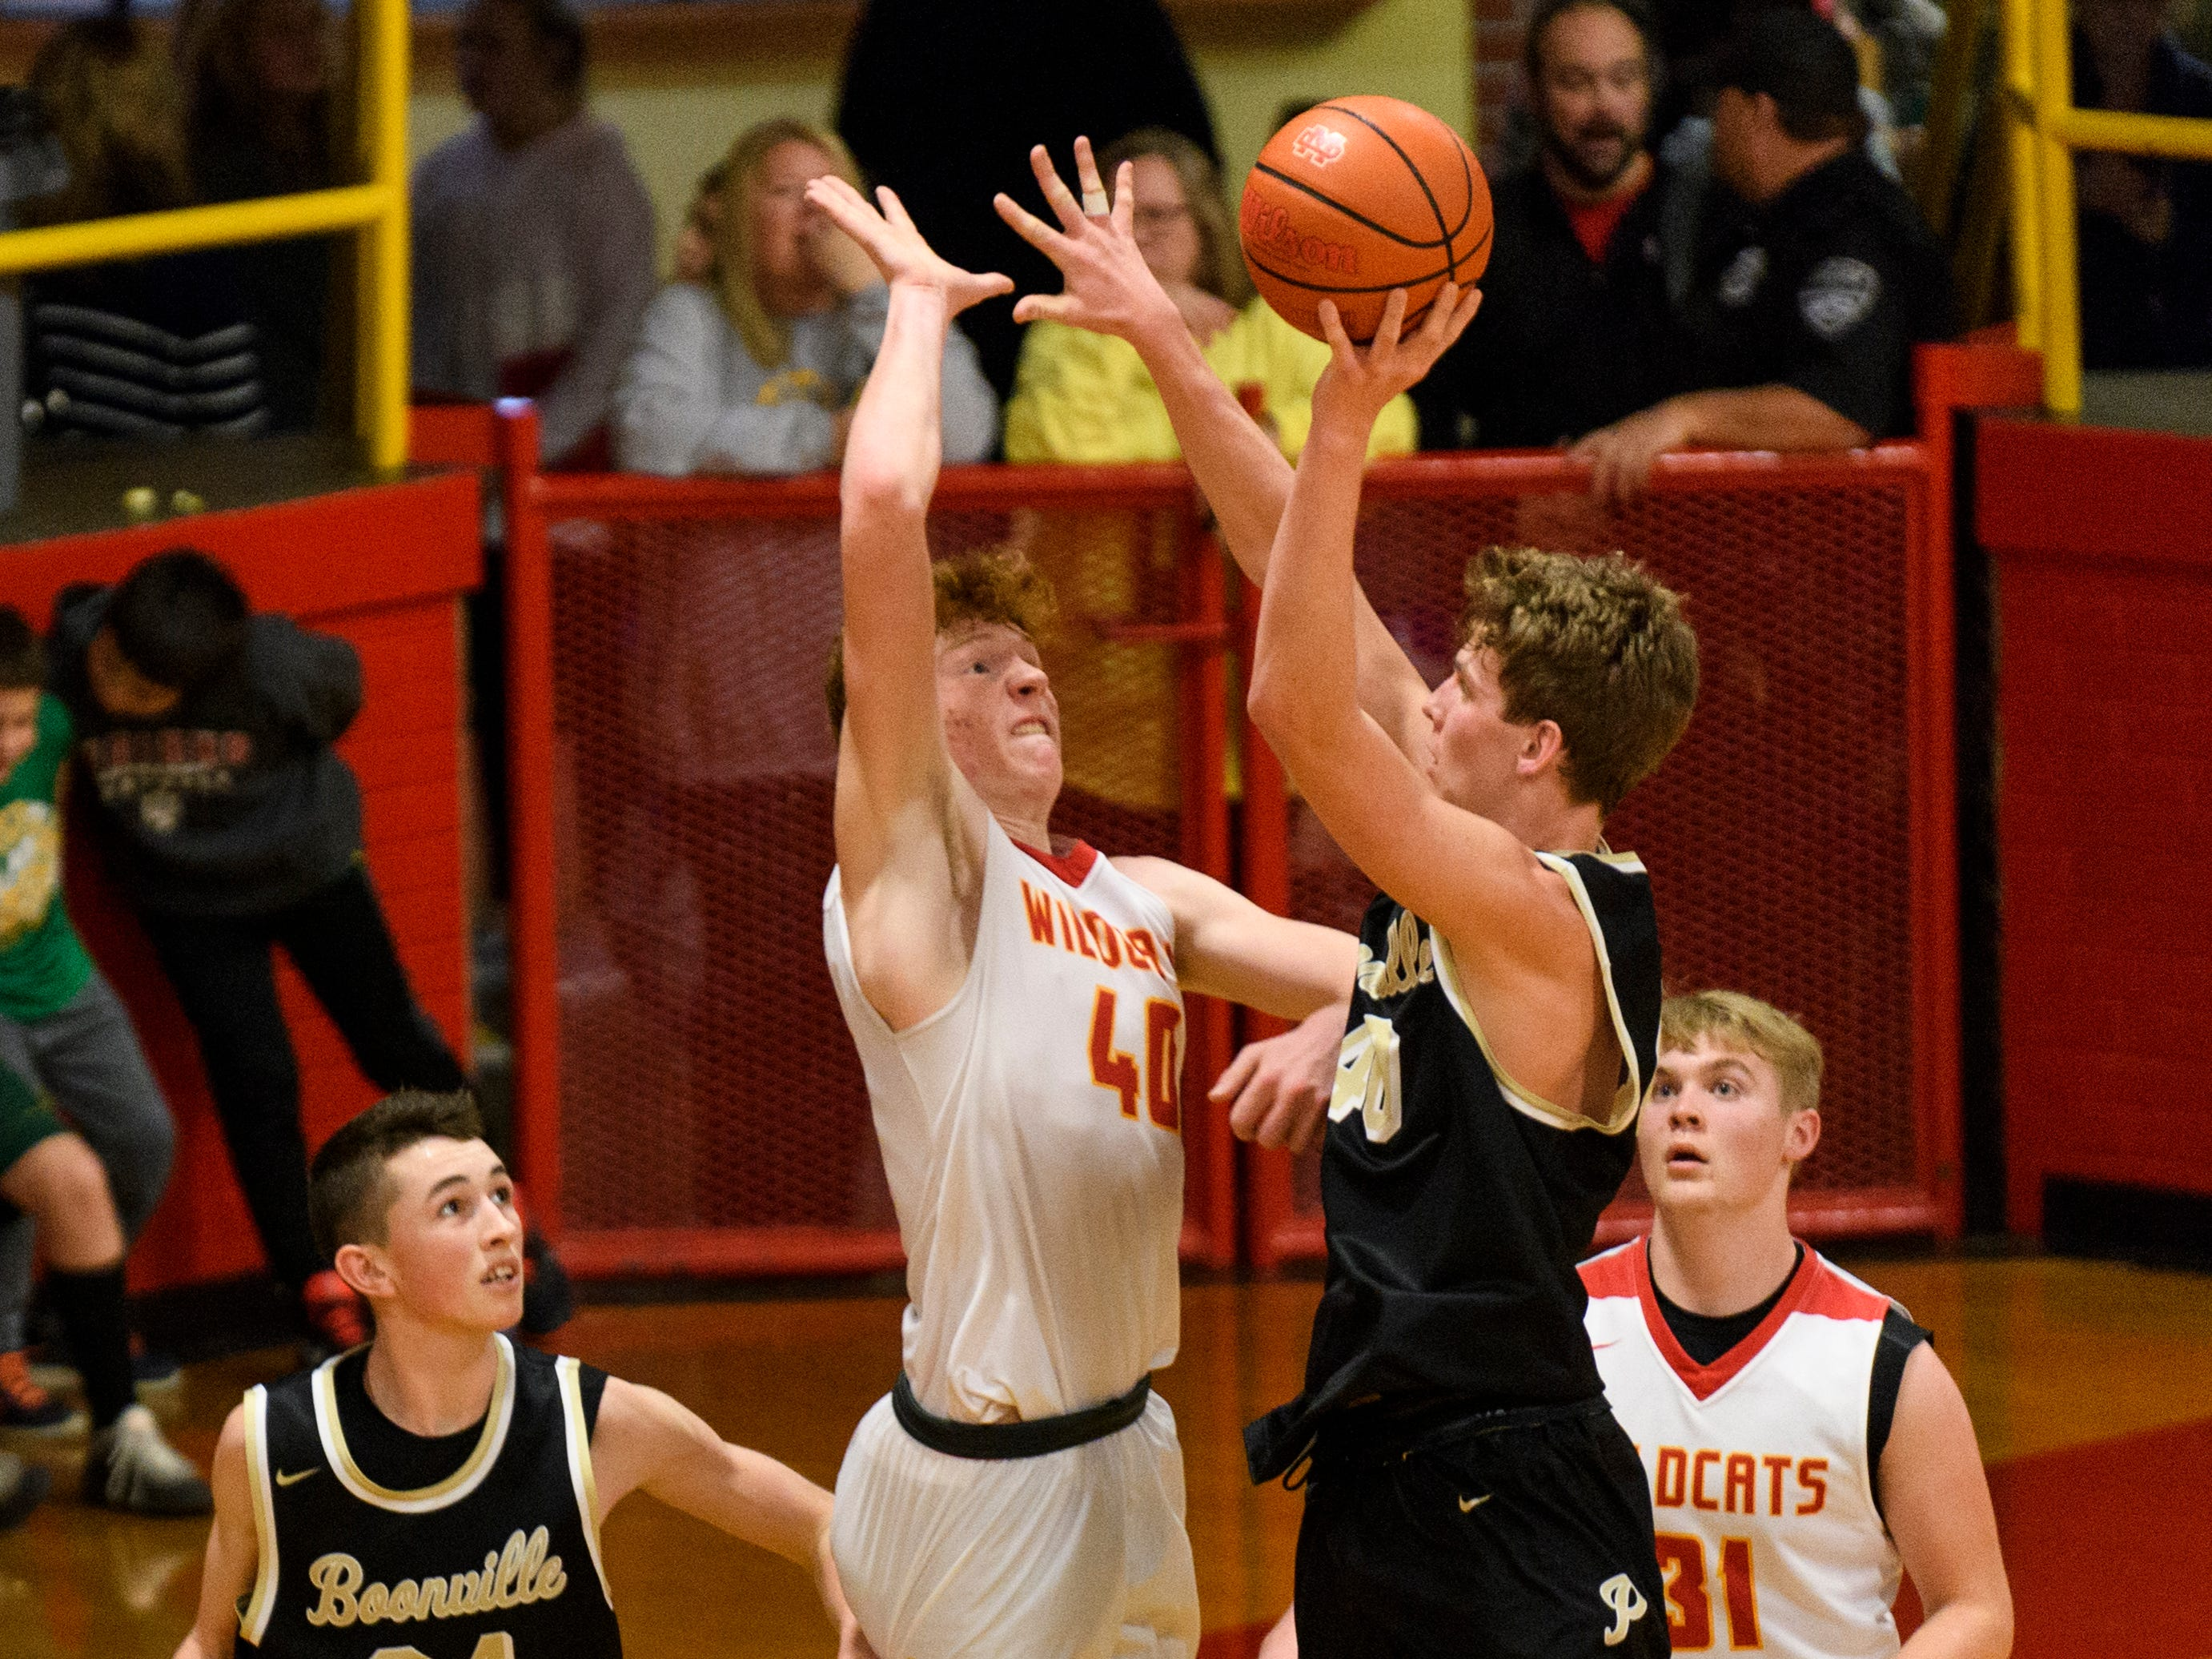 Mater Dei's Alex Money (40) blocks Boonville's Zeb Mills (40) from the net during the fourth quarter at Mater Dei High School in Evansville, Ind., Saturday, Jan. 5, 2019. The Wildcats defeated the Pioneers, 93-65.